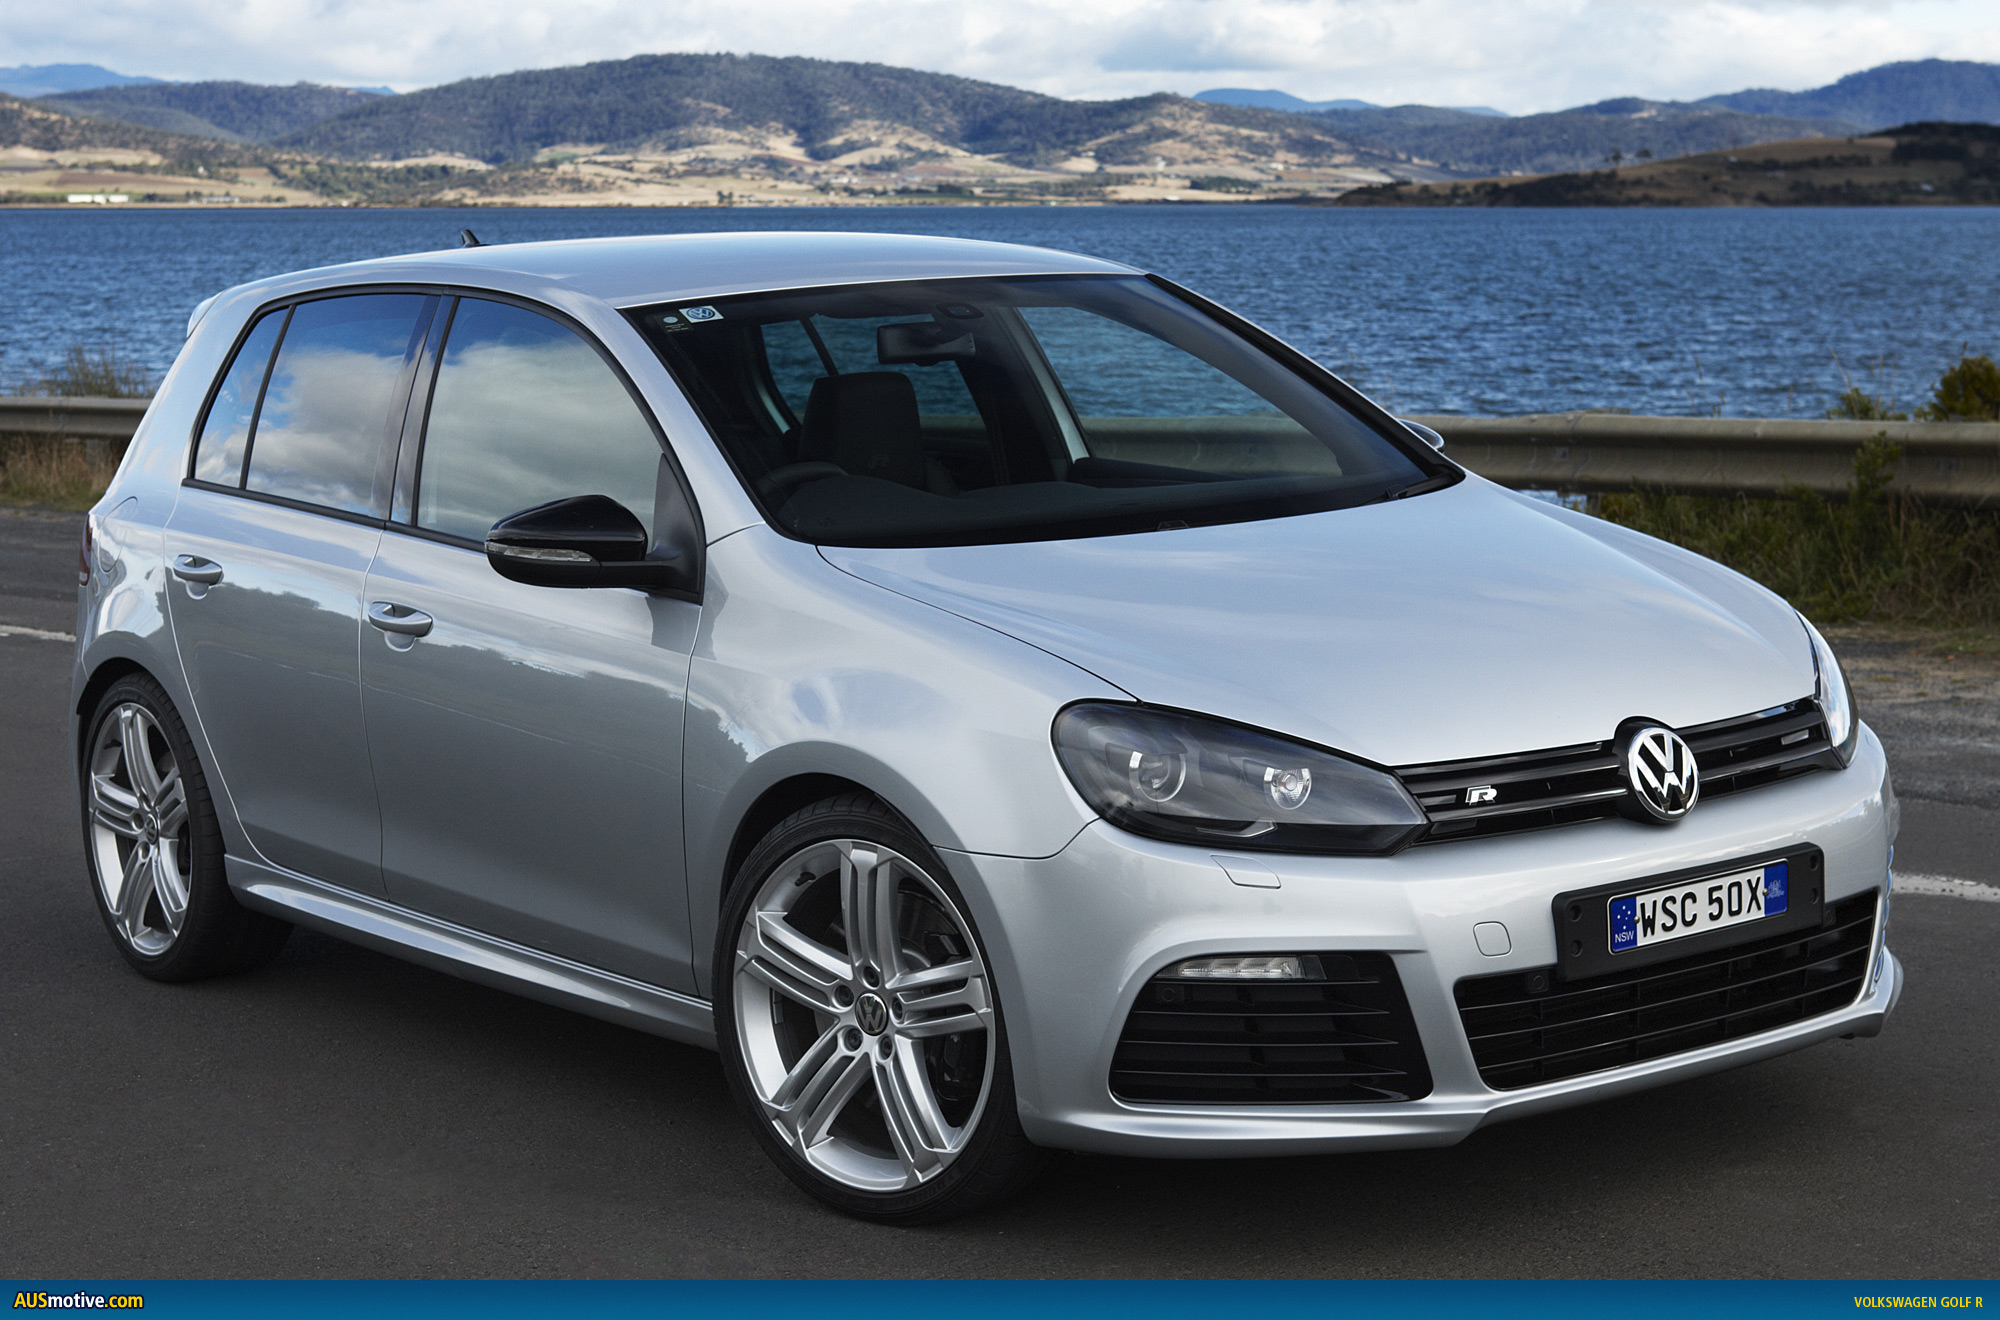 volkswagen golf r detailed australian press release. Black Bedroom Furniture Sets. Home Design Ideas